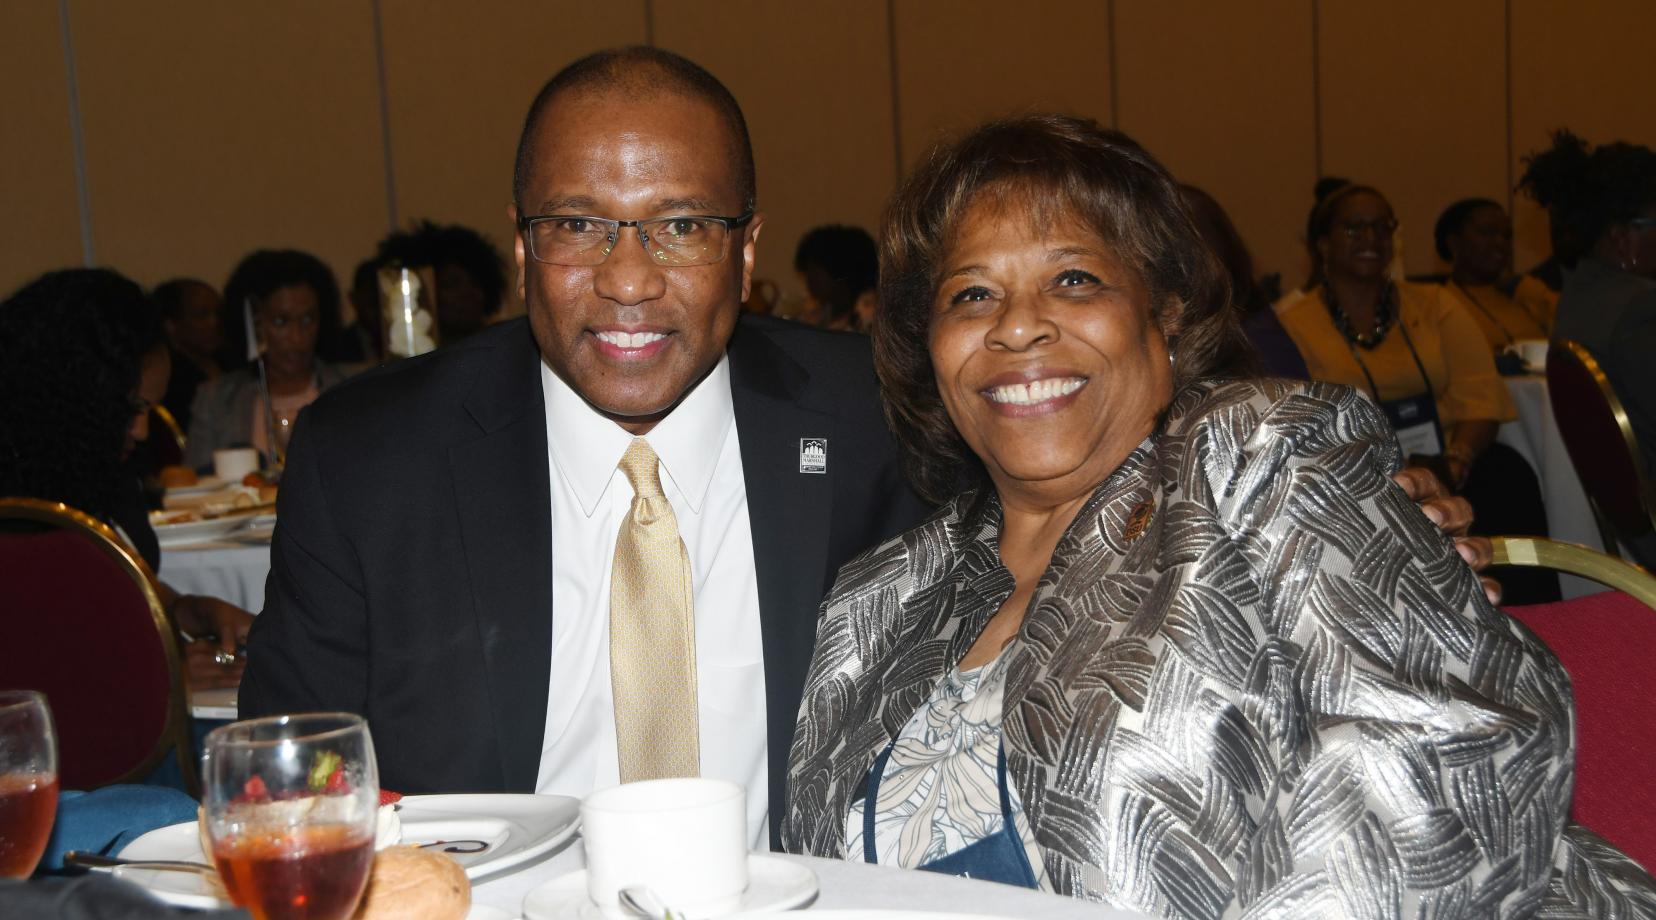 <p>Dr. Harry L. Williams is reunited with his successor current DSU President Wilma Mishoe at the HBCU Philanthropy Symposium. Dr. Williams -- president of DSU from 2010 to 2017 -- attended to give an address in his current capacity as the executive president and CEO of the Thurgood Marshall College Fund</p>